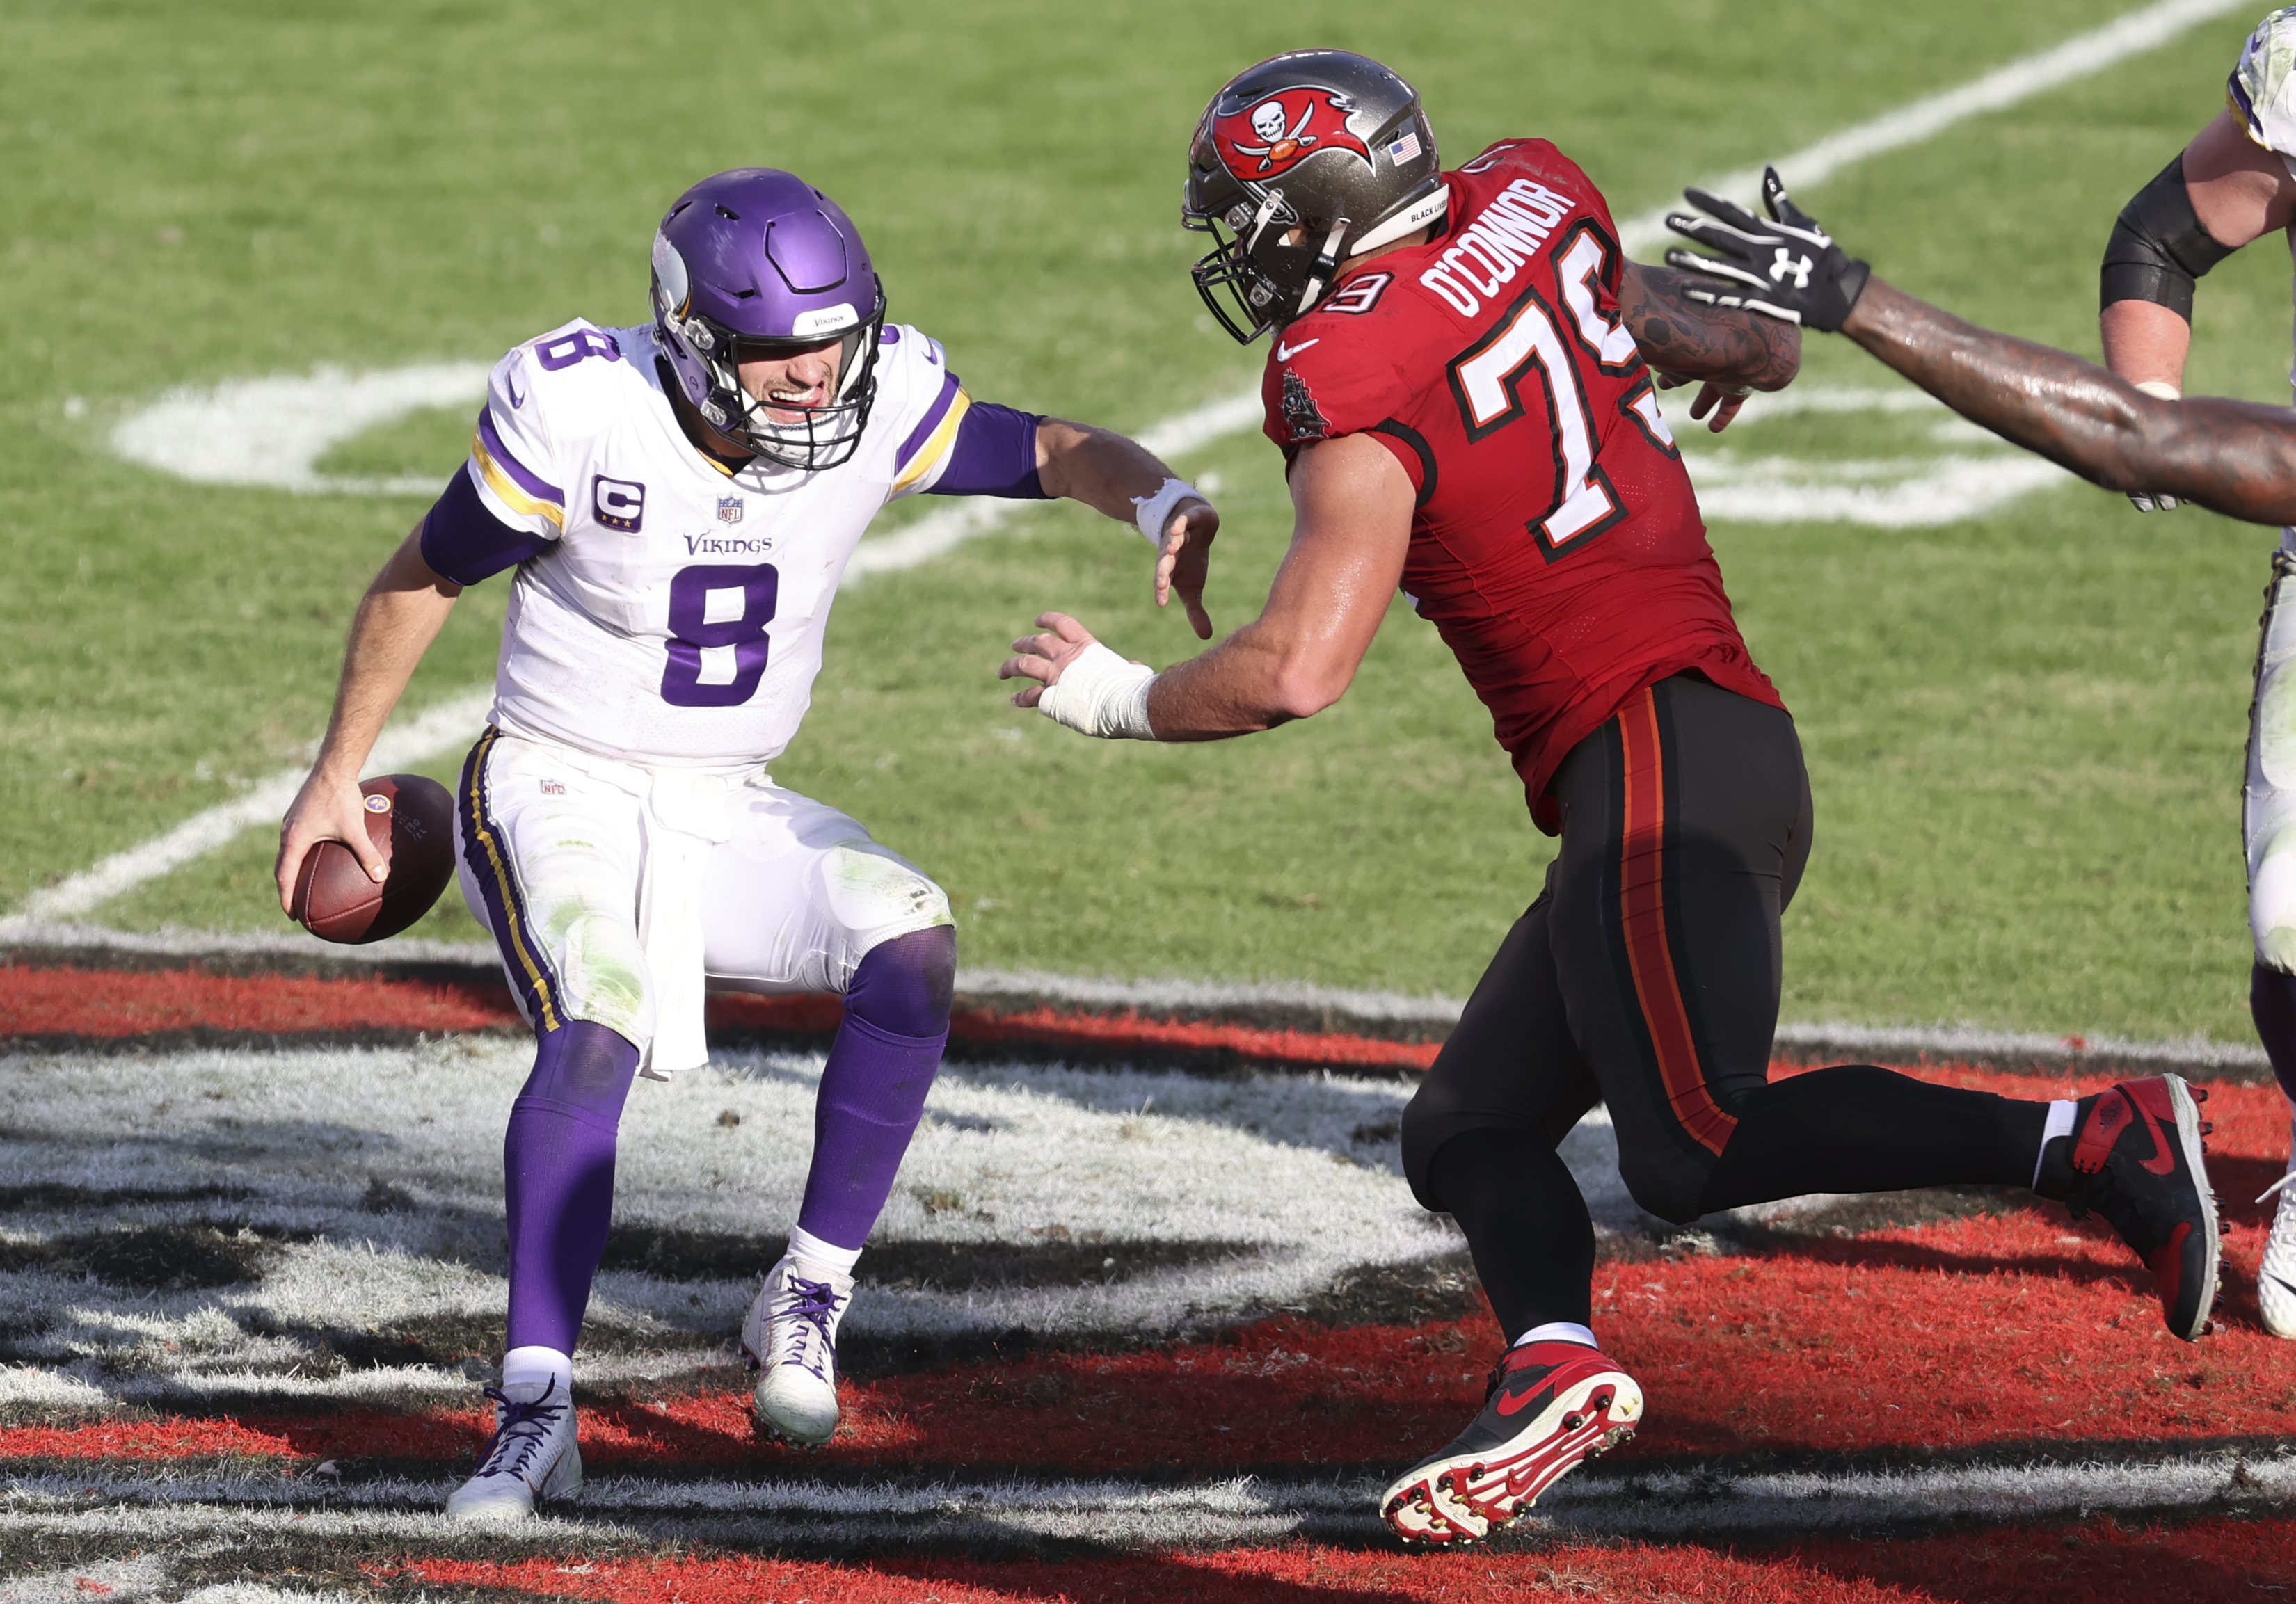 Vikings Lose To Bucs As Playoff Hopes Take A Kick In The Teeth Star Tribune